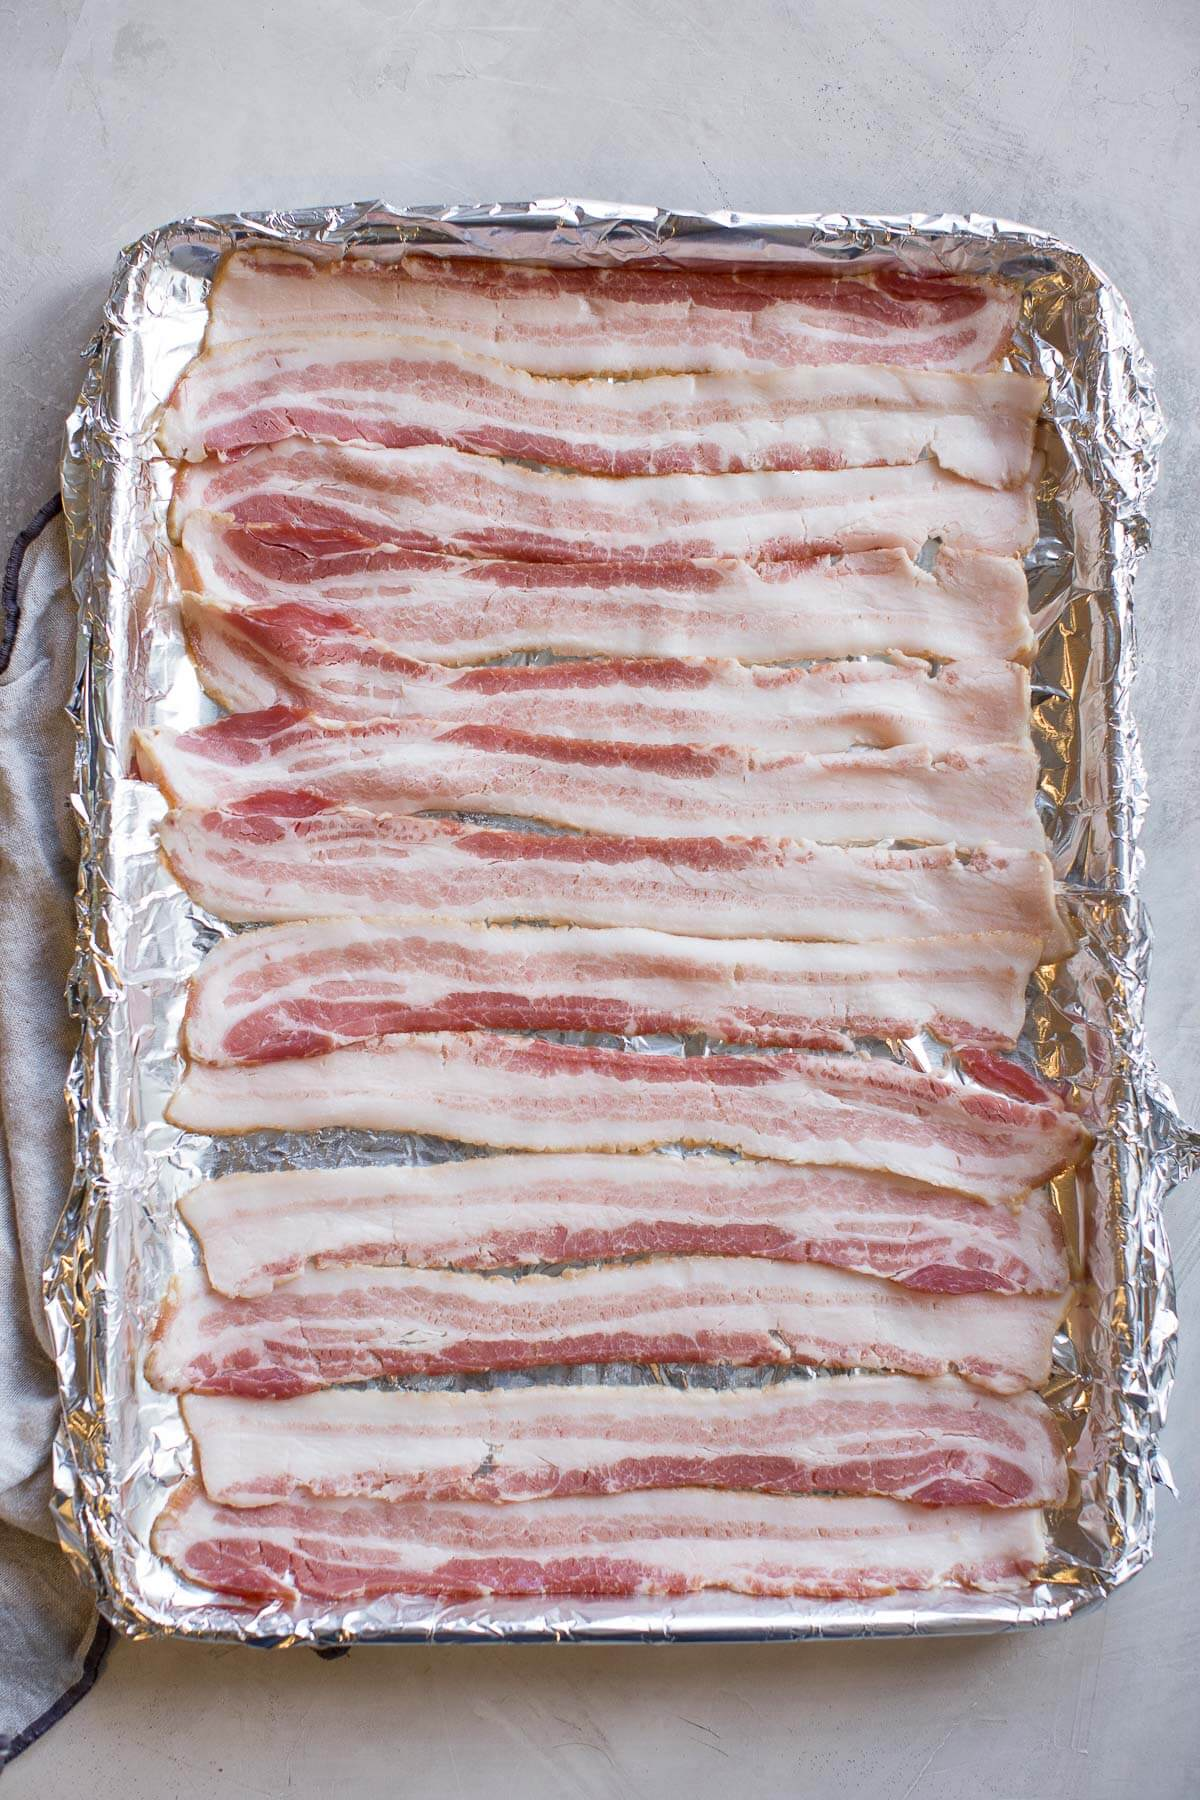 uncooked bacon on baking sheet about to go in oven